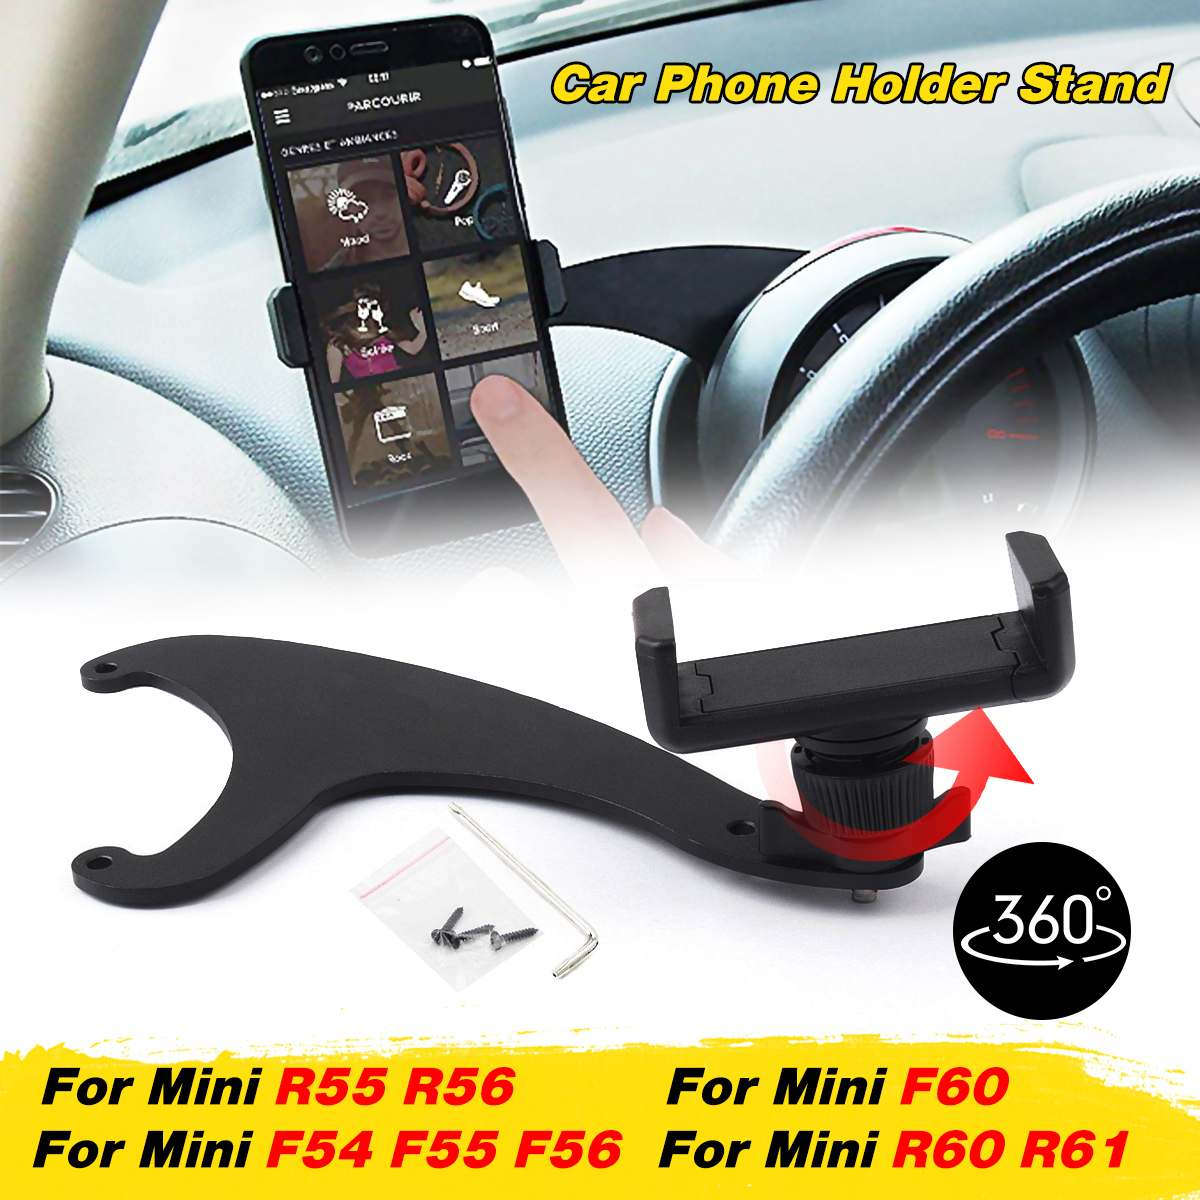 Cell Phone Holder for Car 360 Rotatable Clip GPS Smartphone Cup Mount Countryman Mini Cooper R Series F54 F55 F56 F60 R55-R61